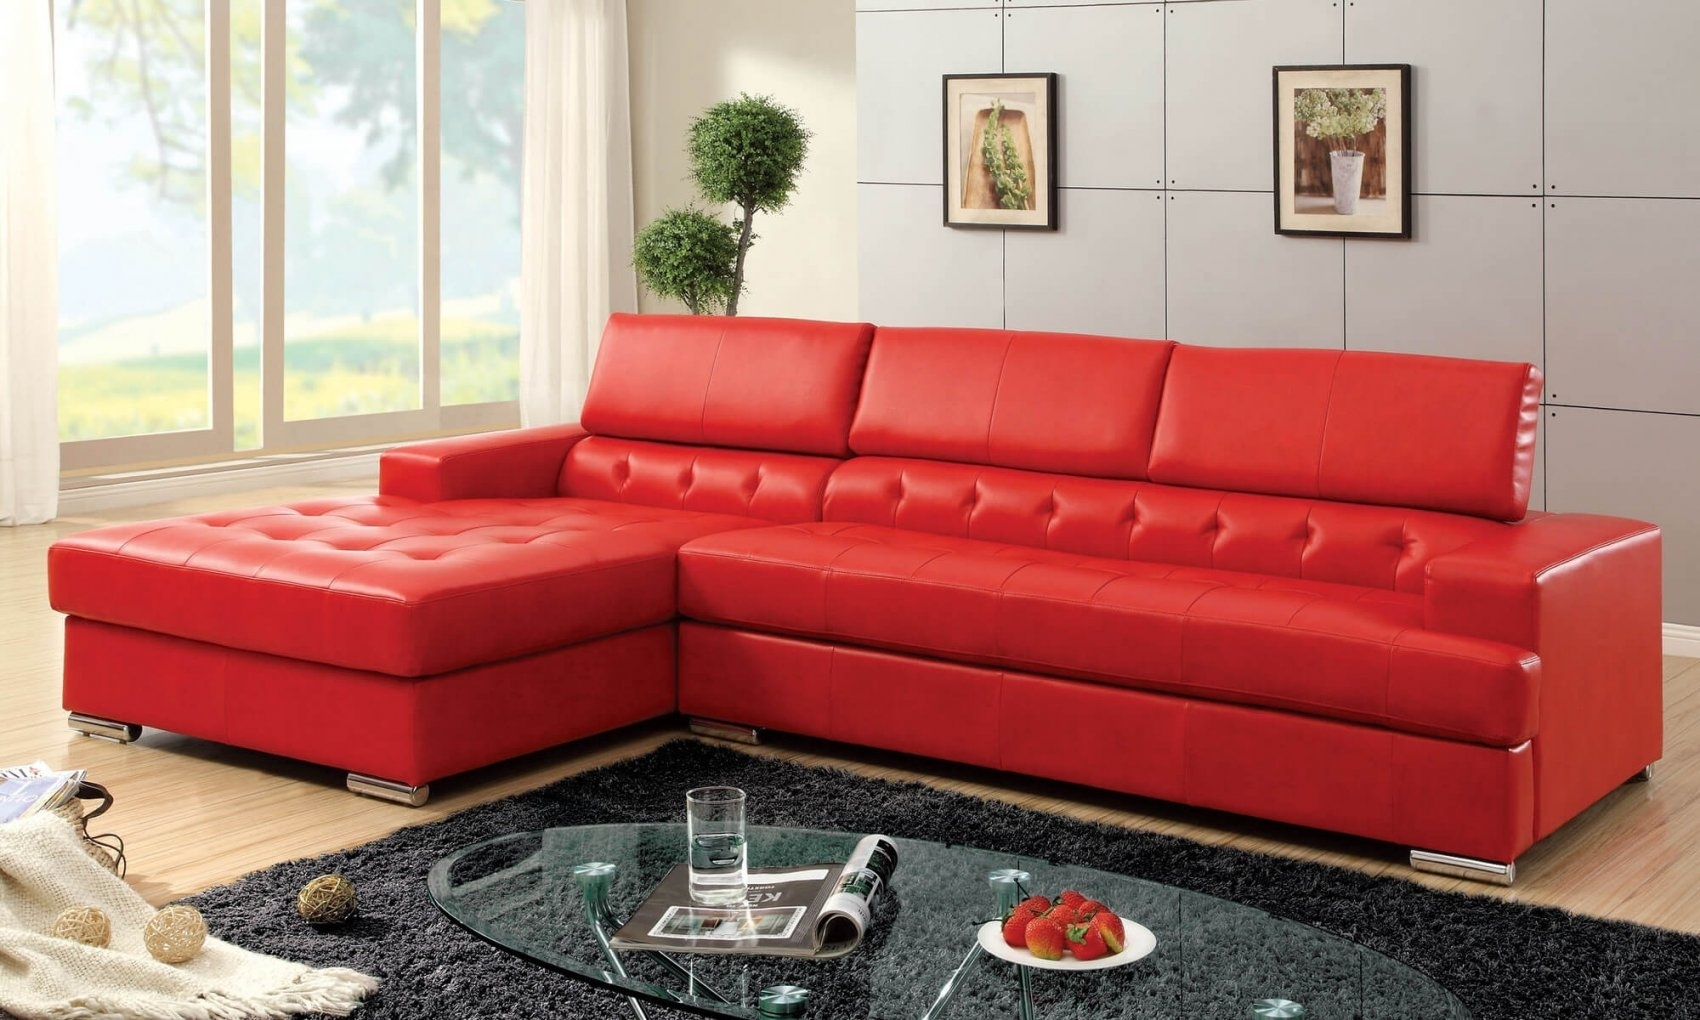 Red Leather Sectional Sofa Contemporary - Best Sectional In inside Red Leather Couches (Image 10 of 15)